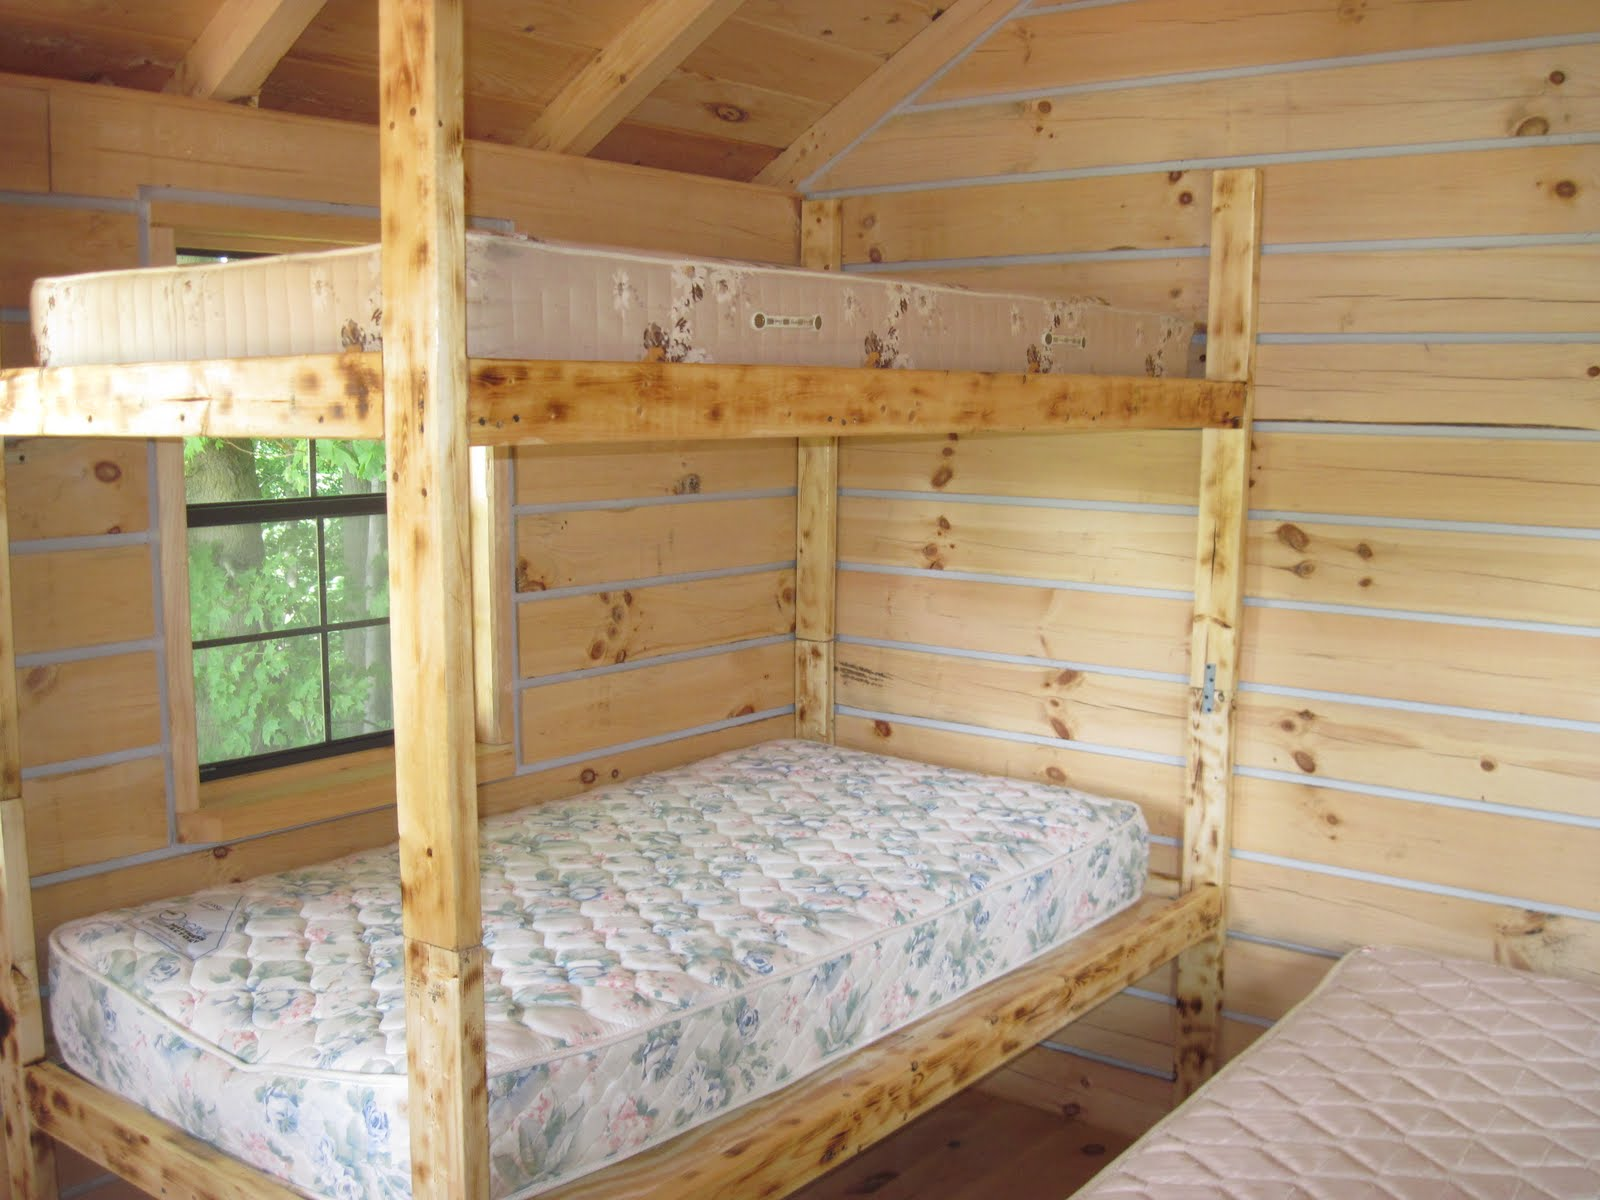 Download Cabin Bunk Bed Plans PDF cabinet incubator plans | woodplans